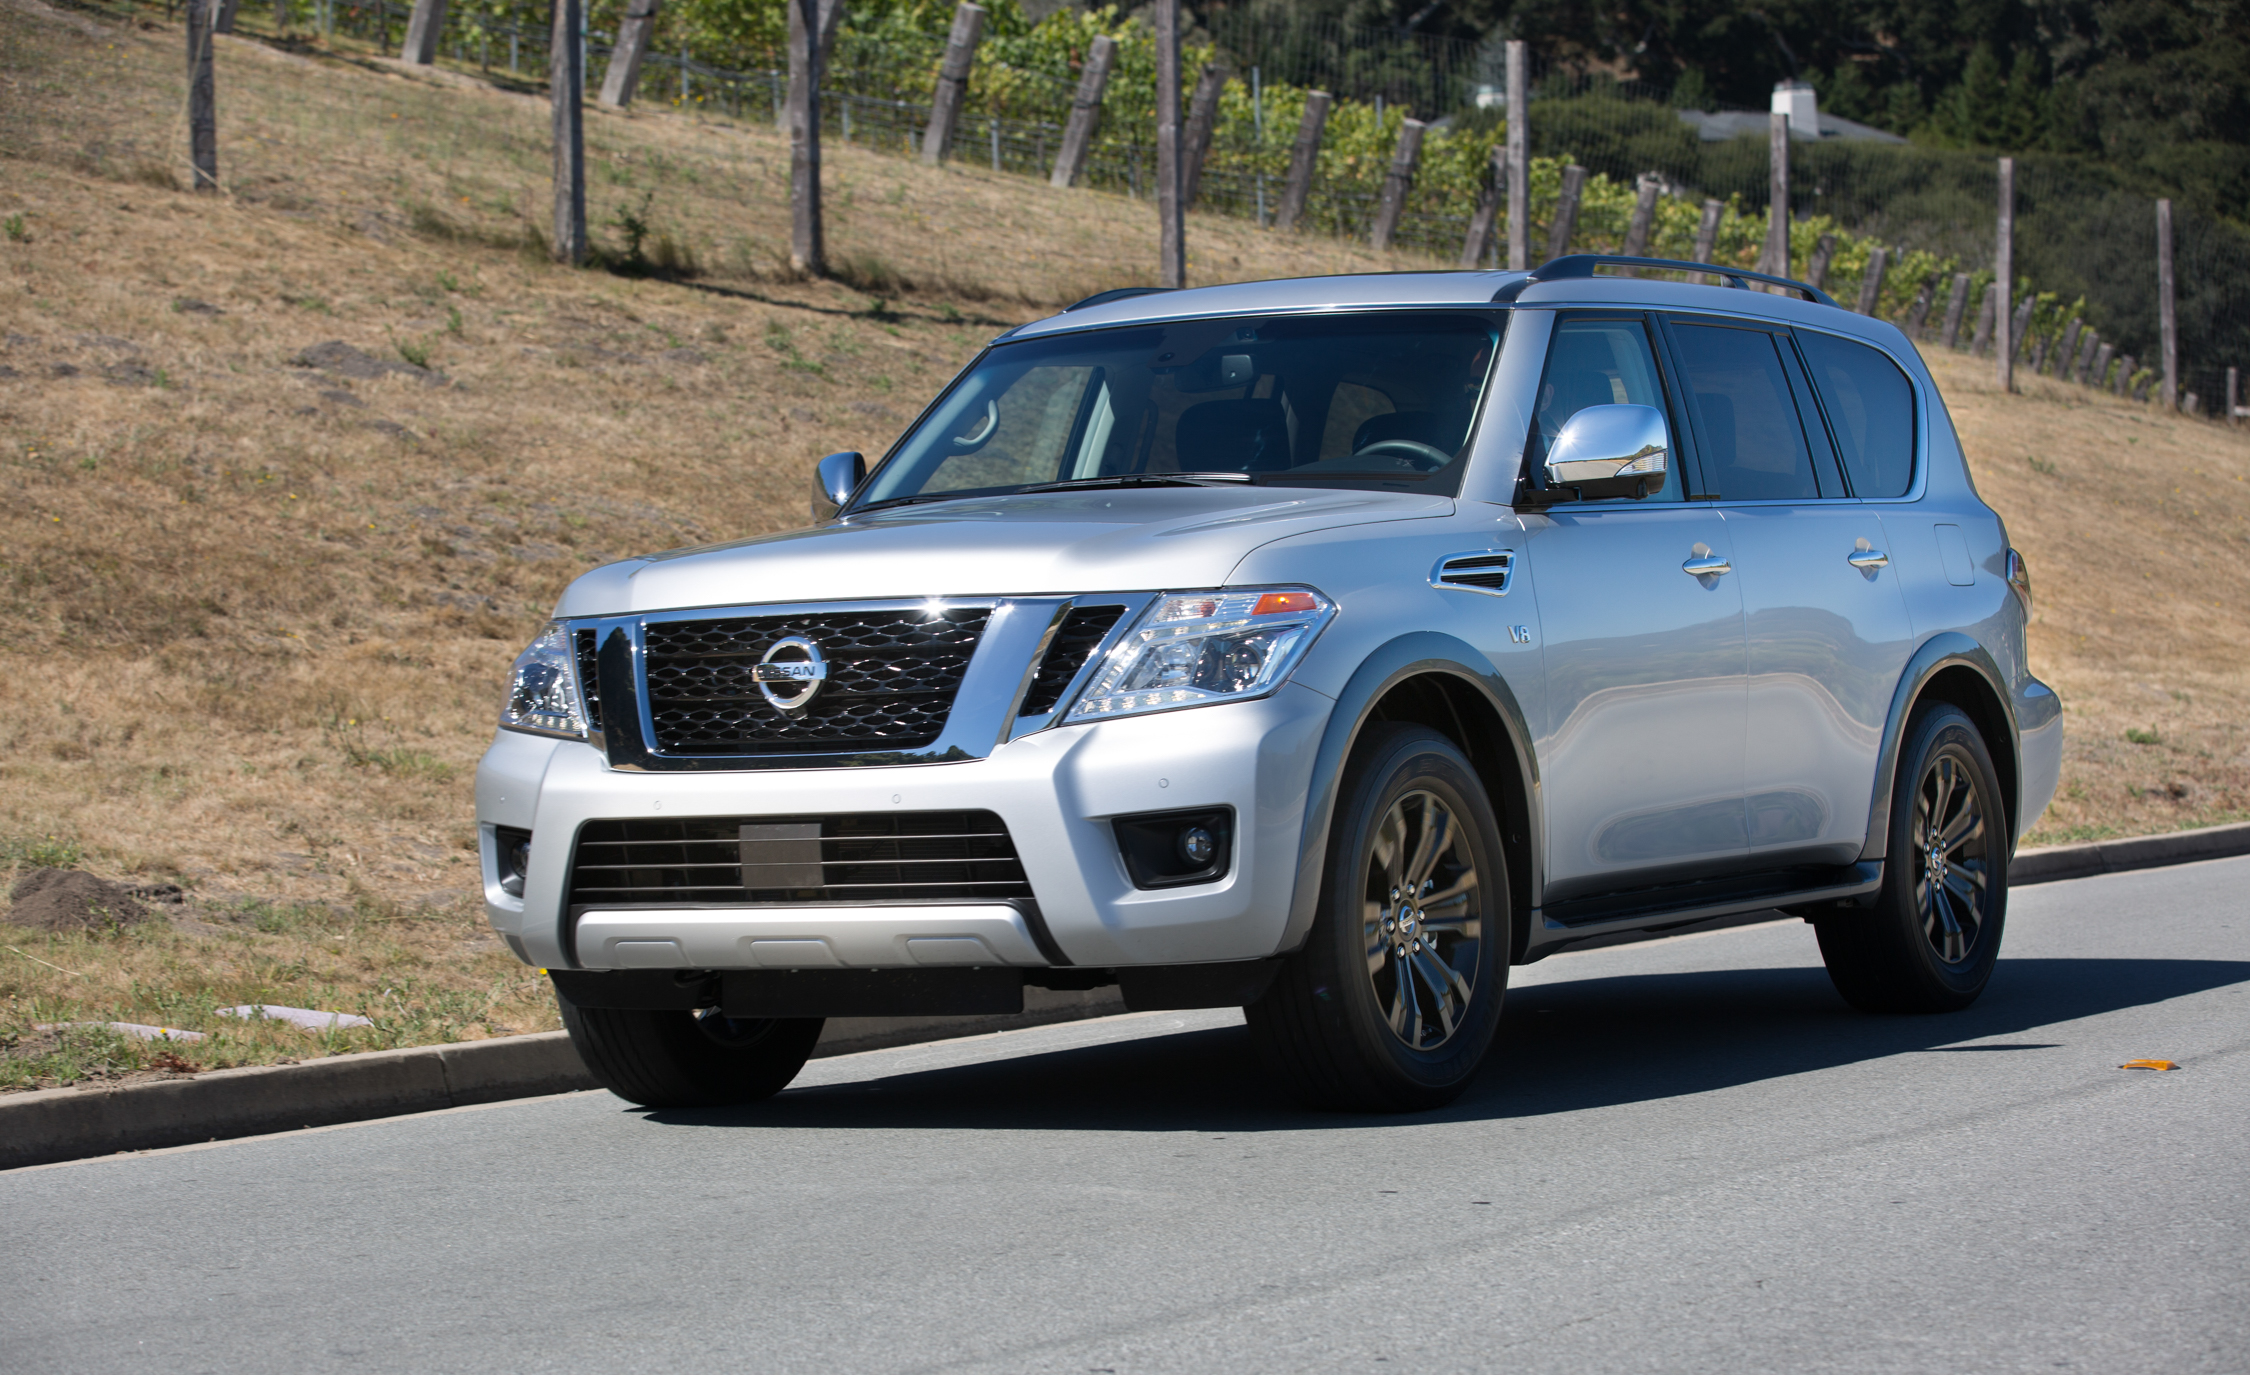 2017 Nissan Armada (View 23 of 27)